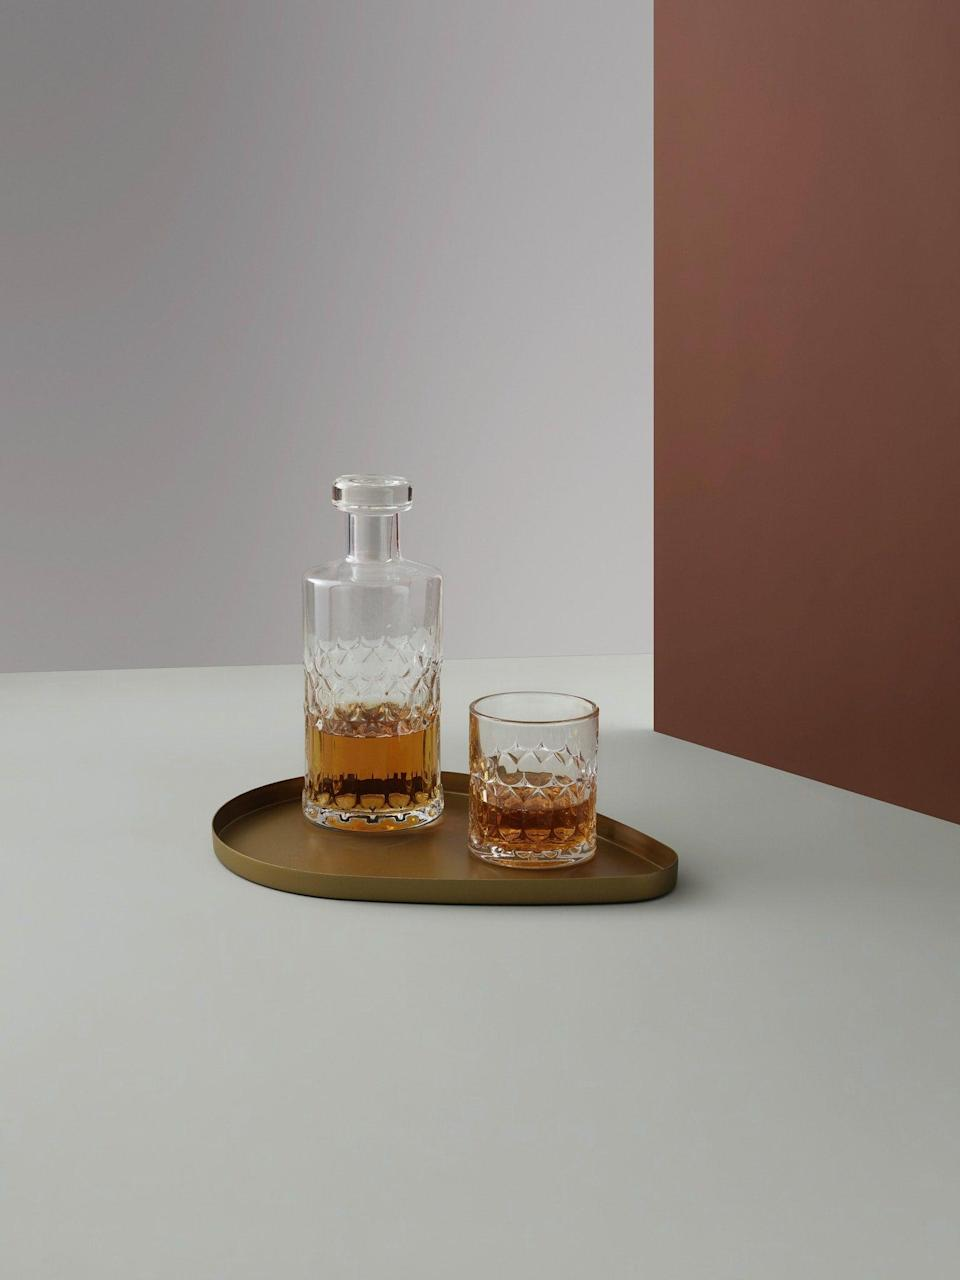 """<h2>Normann Copenhagen</h2><br>This Danish design company makes elevating your space a breeze with its minimalistic and contemporary decor. Snag anything from balloon vases to spirit carafes for up to 20% off. <br><br><em>Shop</em> <strong><em><a href=""""http://verishop.com/brand/normann-copenhagen"""" rel=""""nofollow noopener"""" target=""""_blank"""" data-ylk=""""slk:Normann Copenhagen"""" class=""""link rapid-noclick-resp"""">Normann Copenhagen</a></em></strong><br><br><strong>Normann Copenhagen</strong> Spirit Carafe, $, available at <a href=""""https://go.skimresources.com/?id=30283X879131&url=https%3A%2F%2Fshop-links.co%2F1735354980884883324"""" rel=""""nofollow noopener"""" target=""""_blank"""" data-ylk=""""slk:Verishop"""" class=""""link rapid-noclick-resp"""">Verishop</a>"""